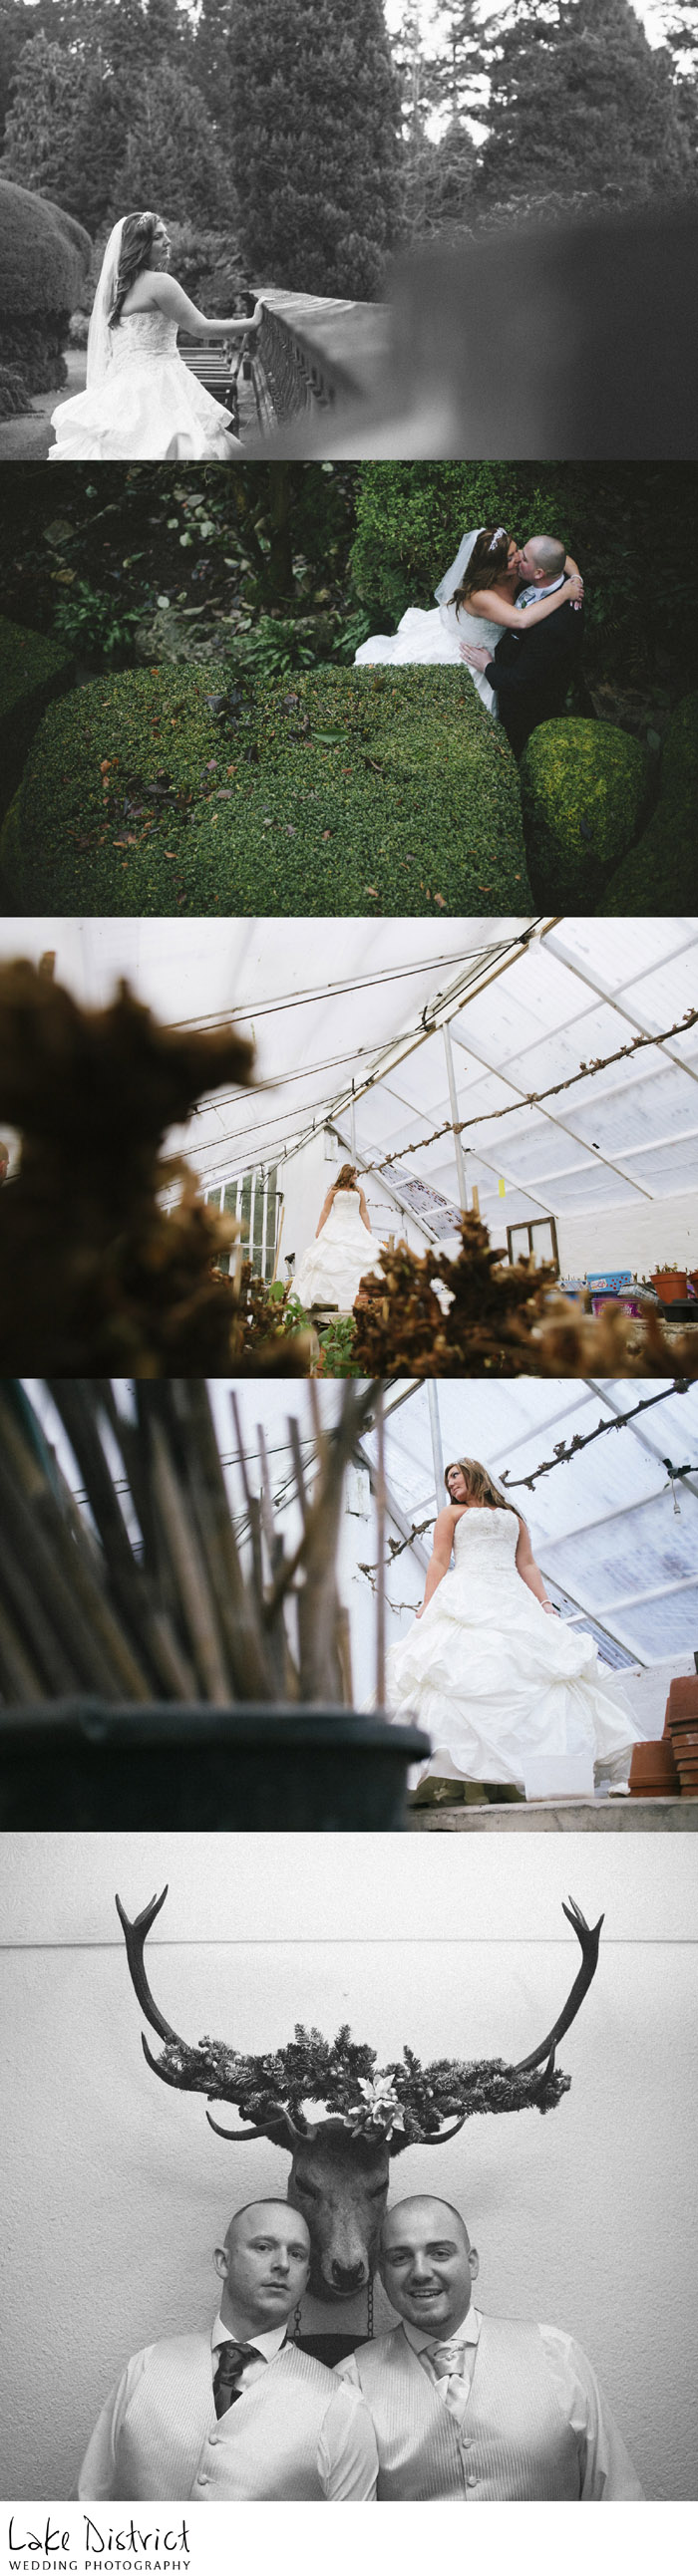 awesome wedding photography in barrow, gosforth and wasdale